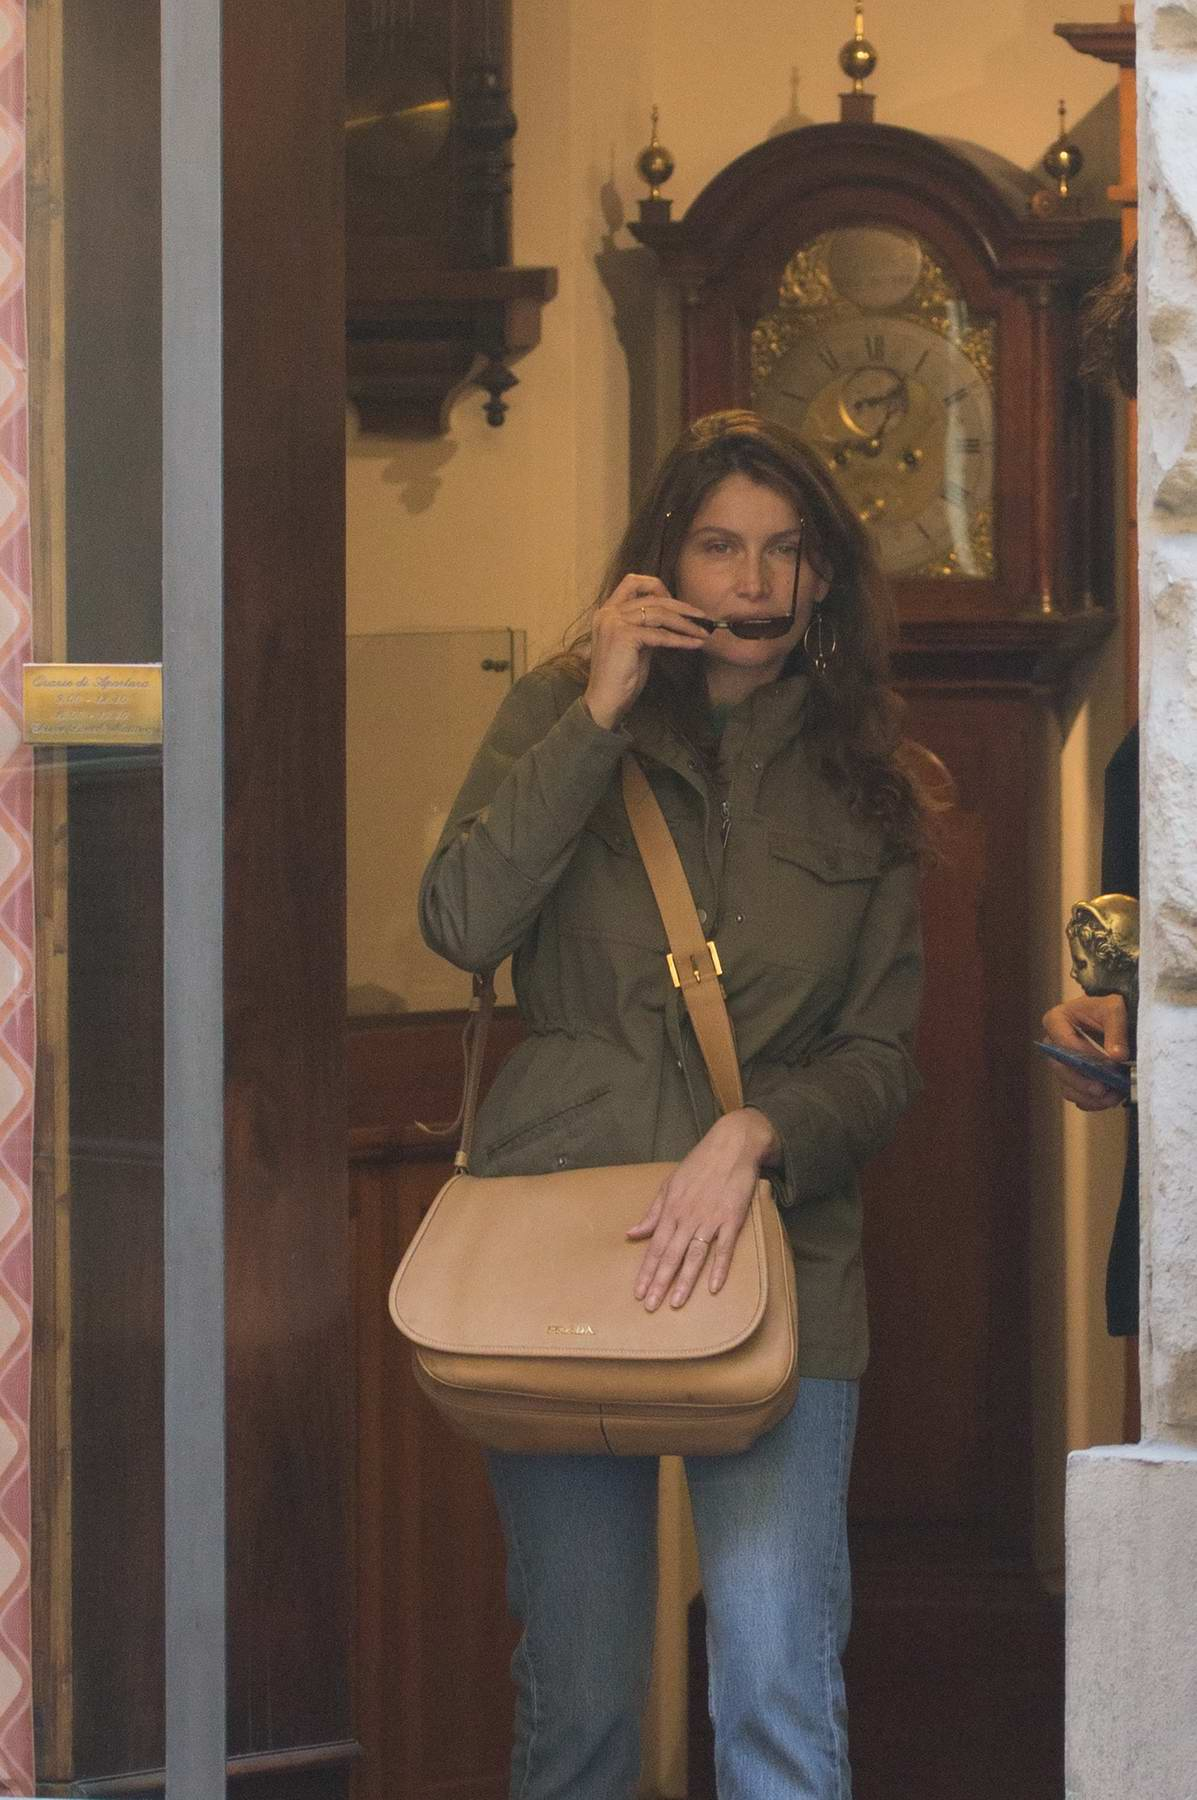 Laetitia Casta and Louis Garrel spotted in Florence, Italy